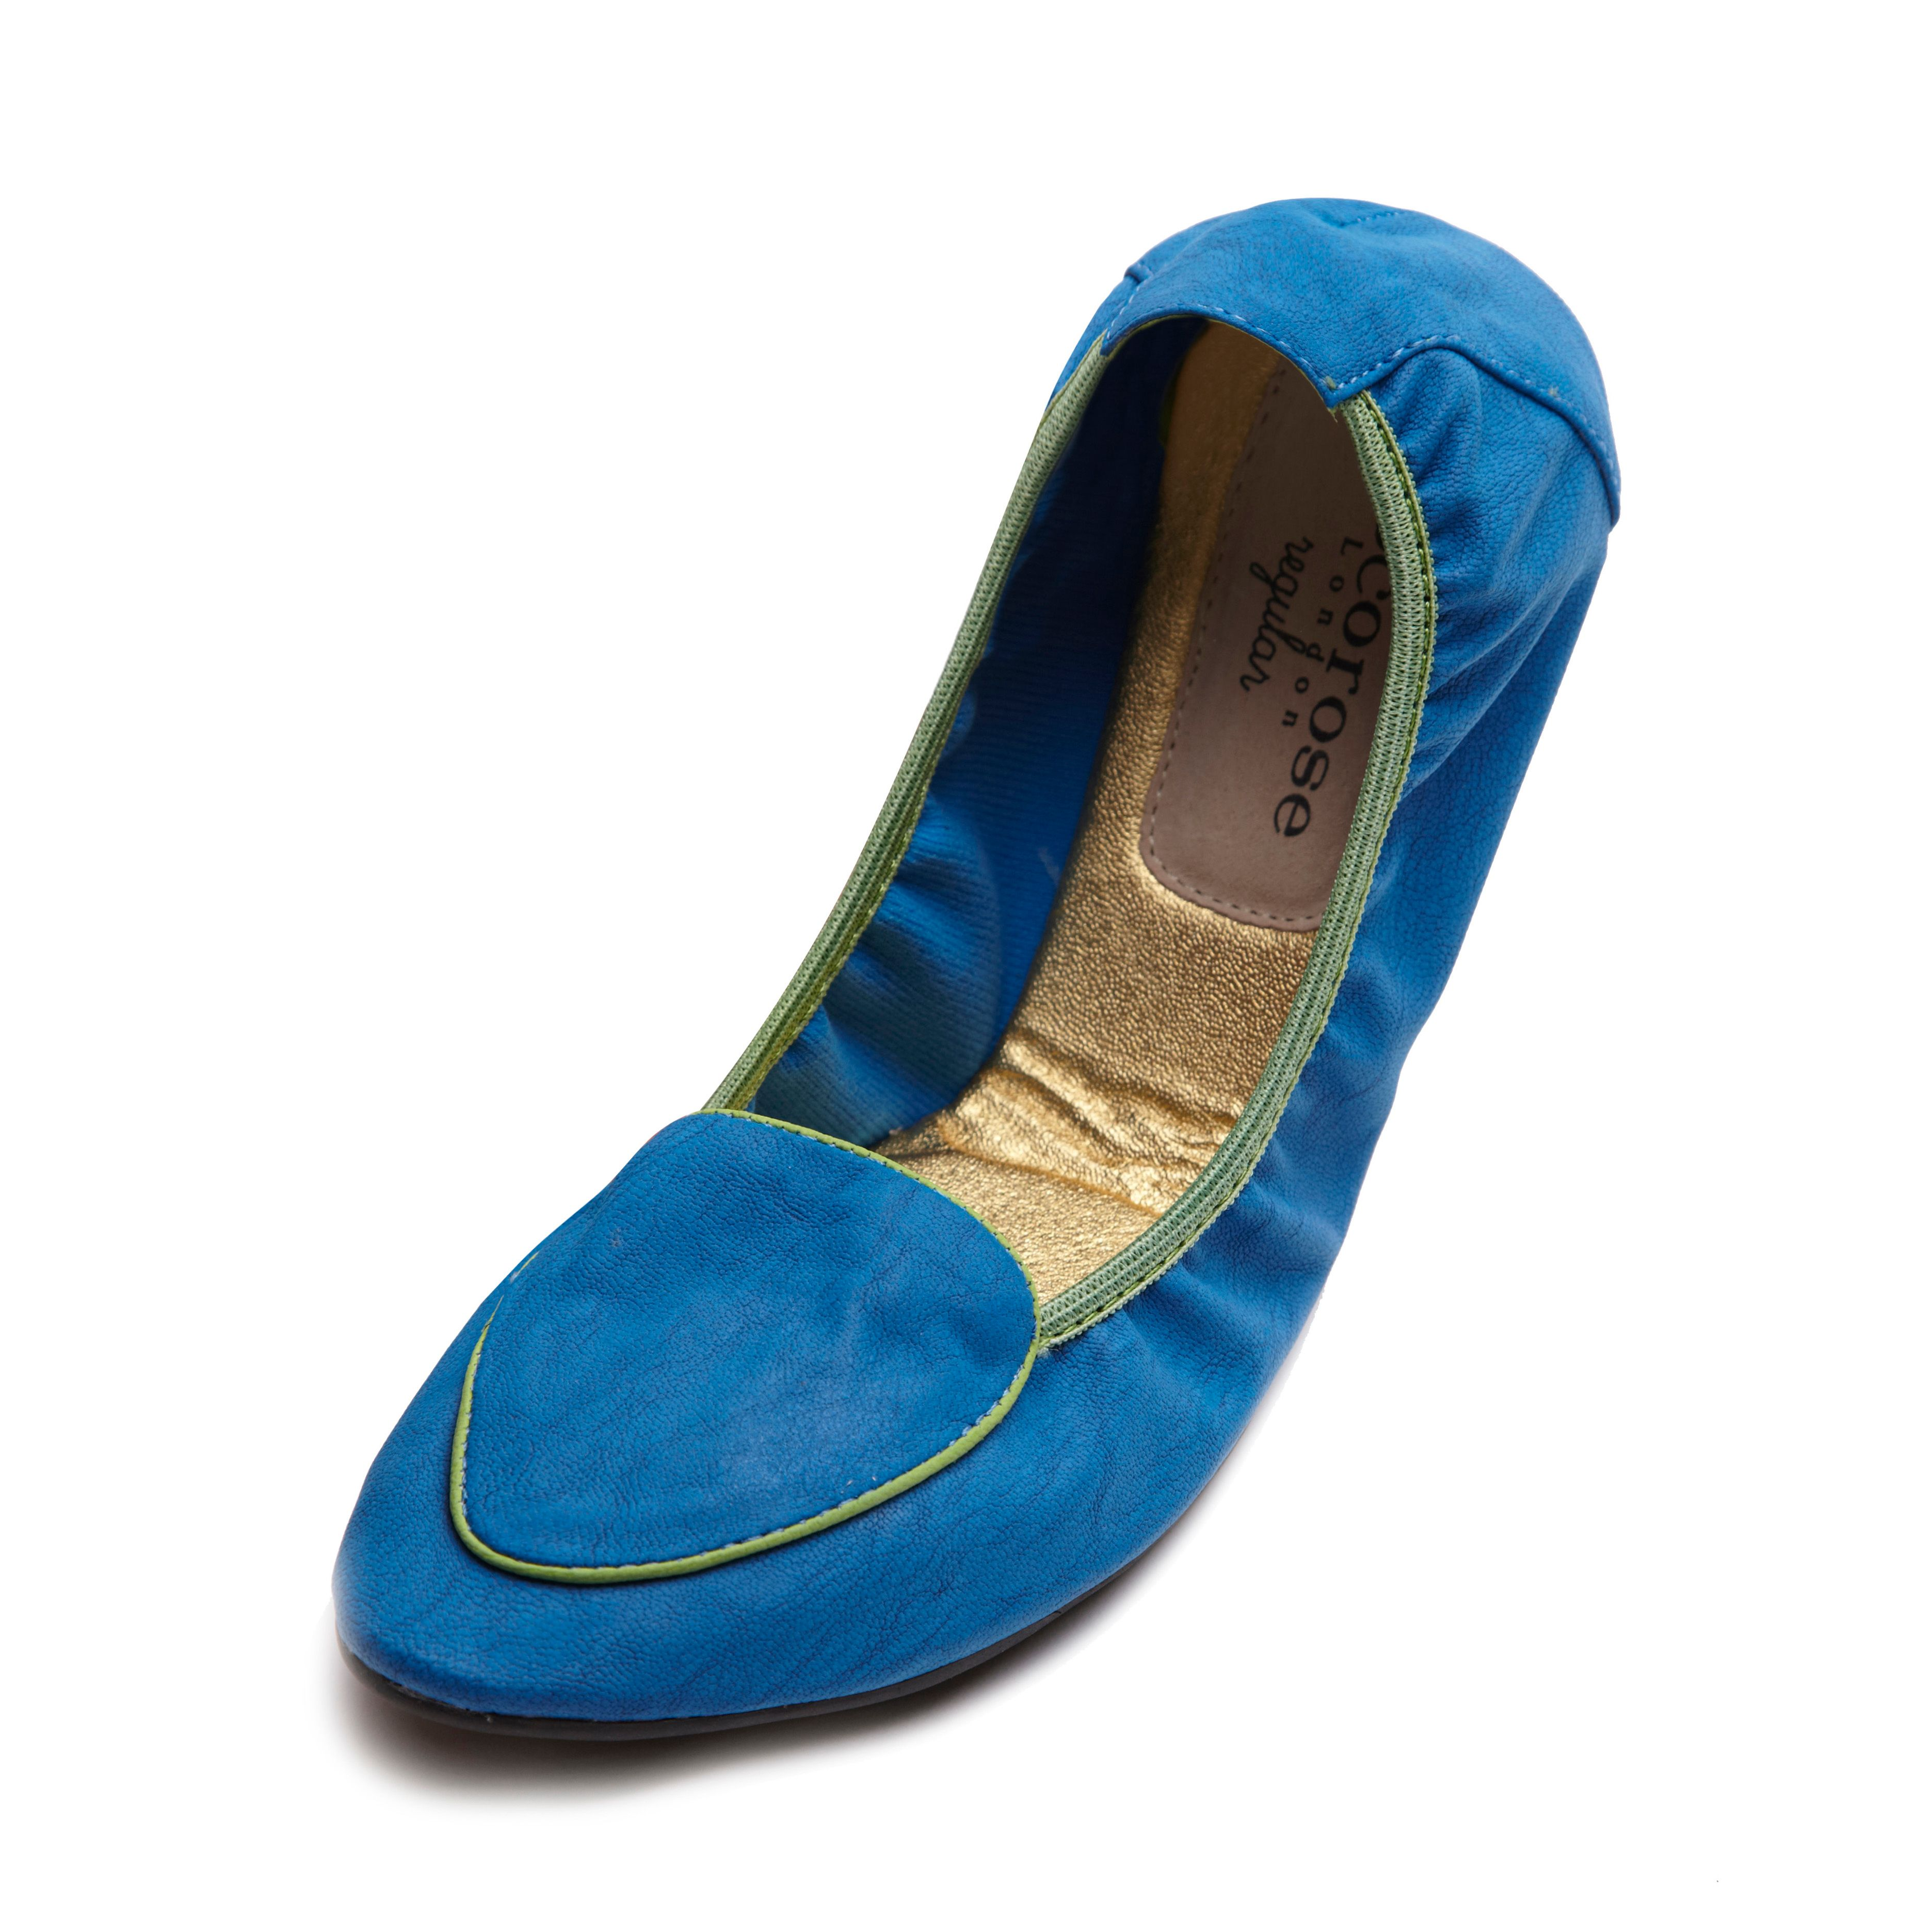 Islington blue foldable loafer